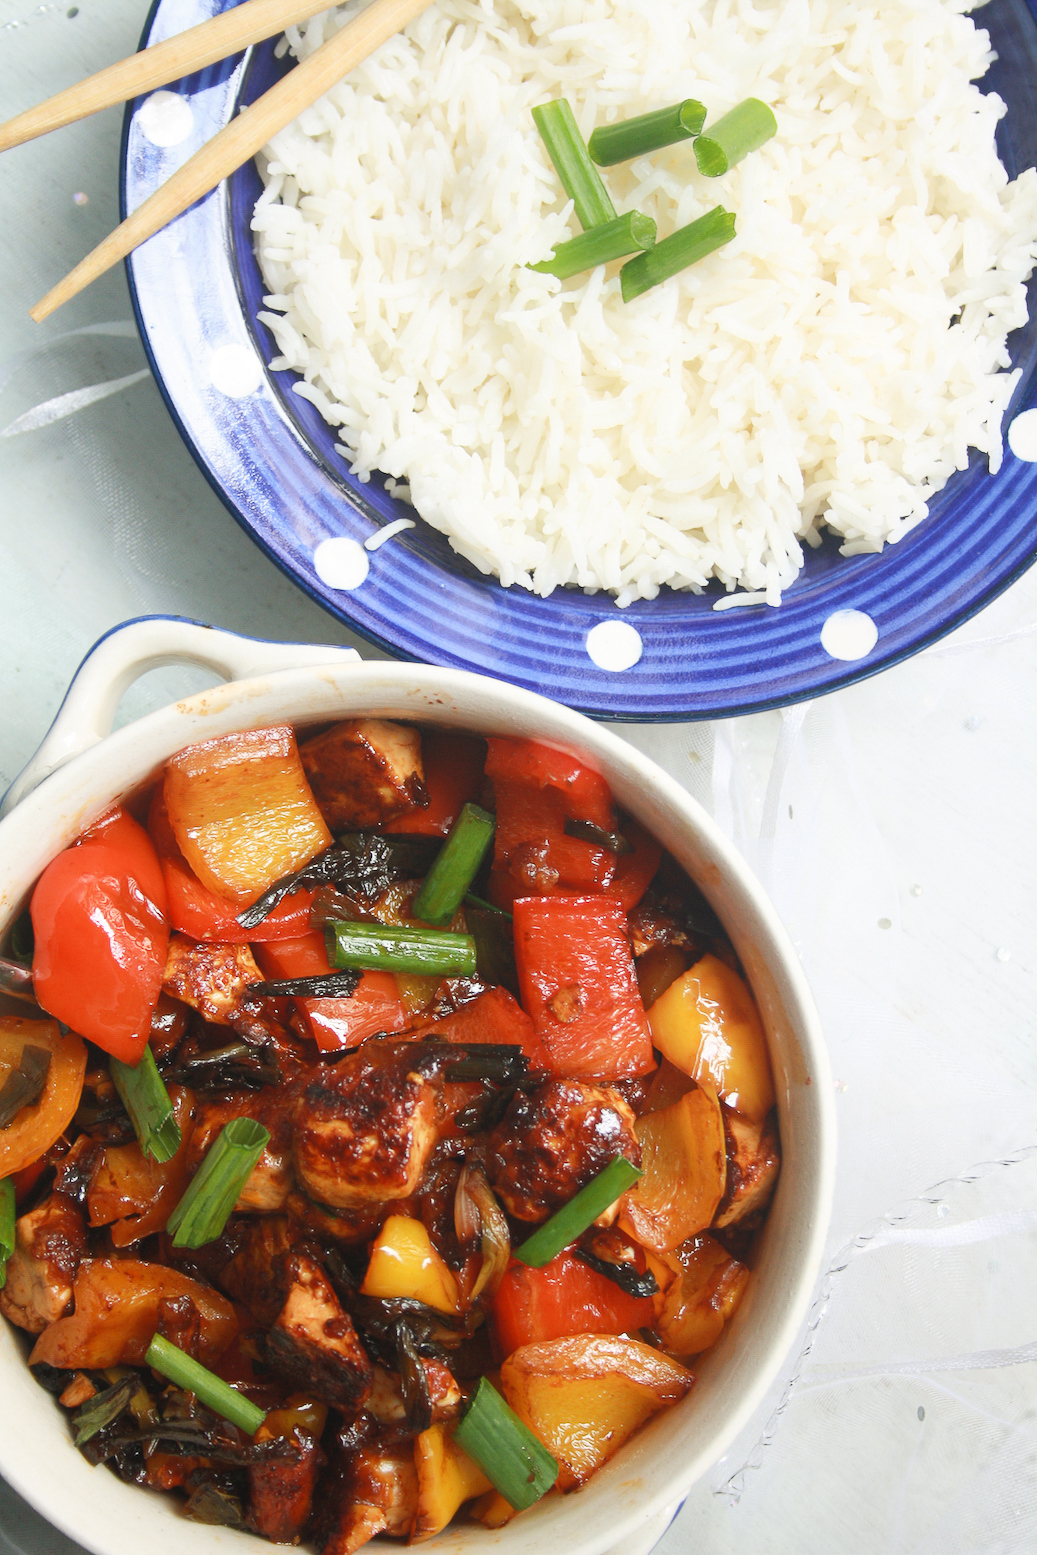 Quick and flavourful tofu veggie stir fry with plenty of zippy ginger teriyaki flavour!